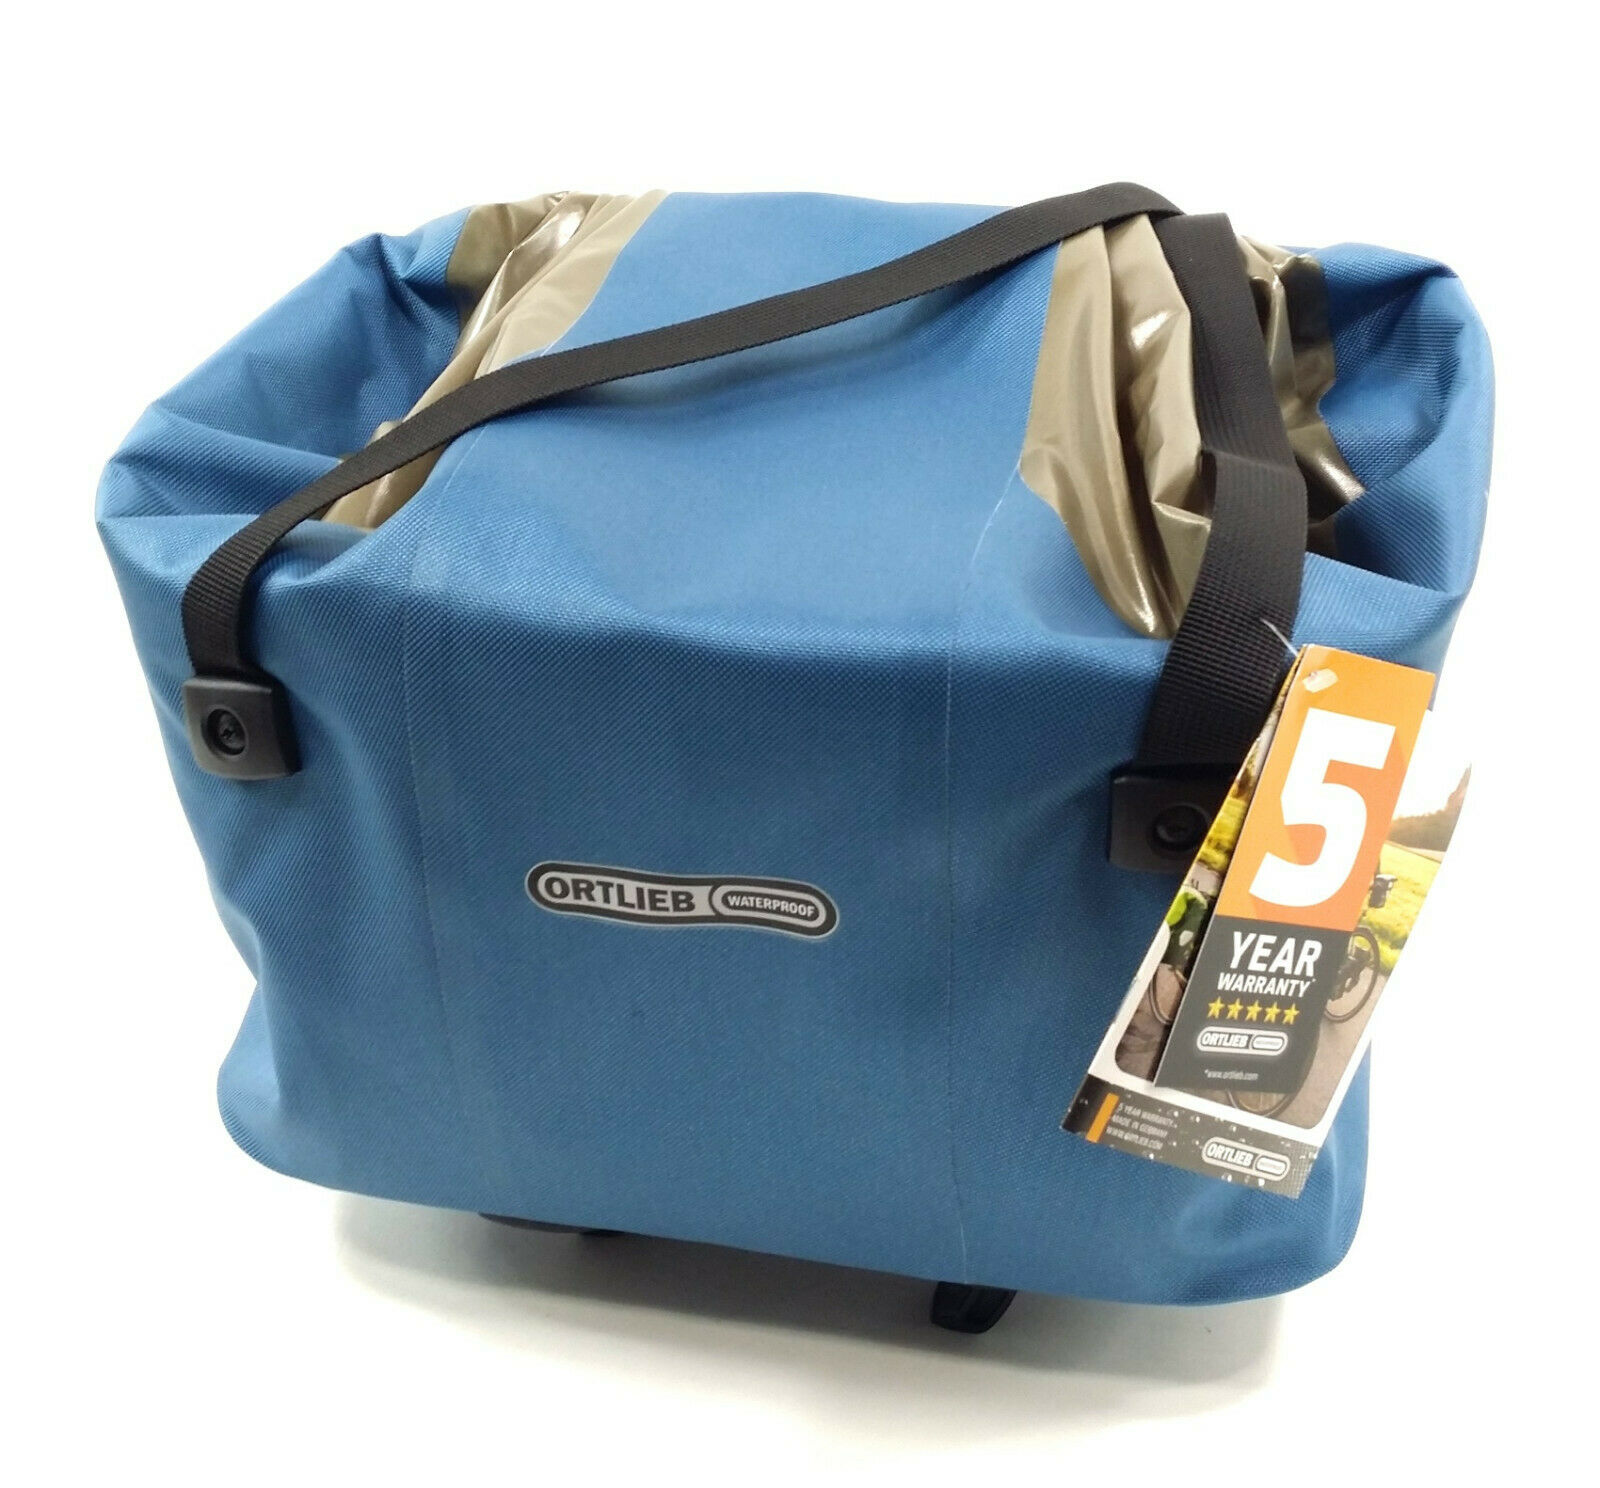 Ortlieb Hinterradkorb Waterproof Bicycle Trunk Bag 22L bluee F79105